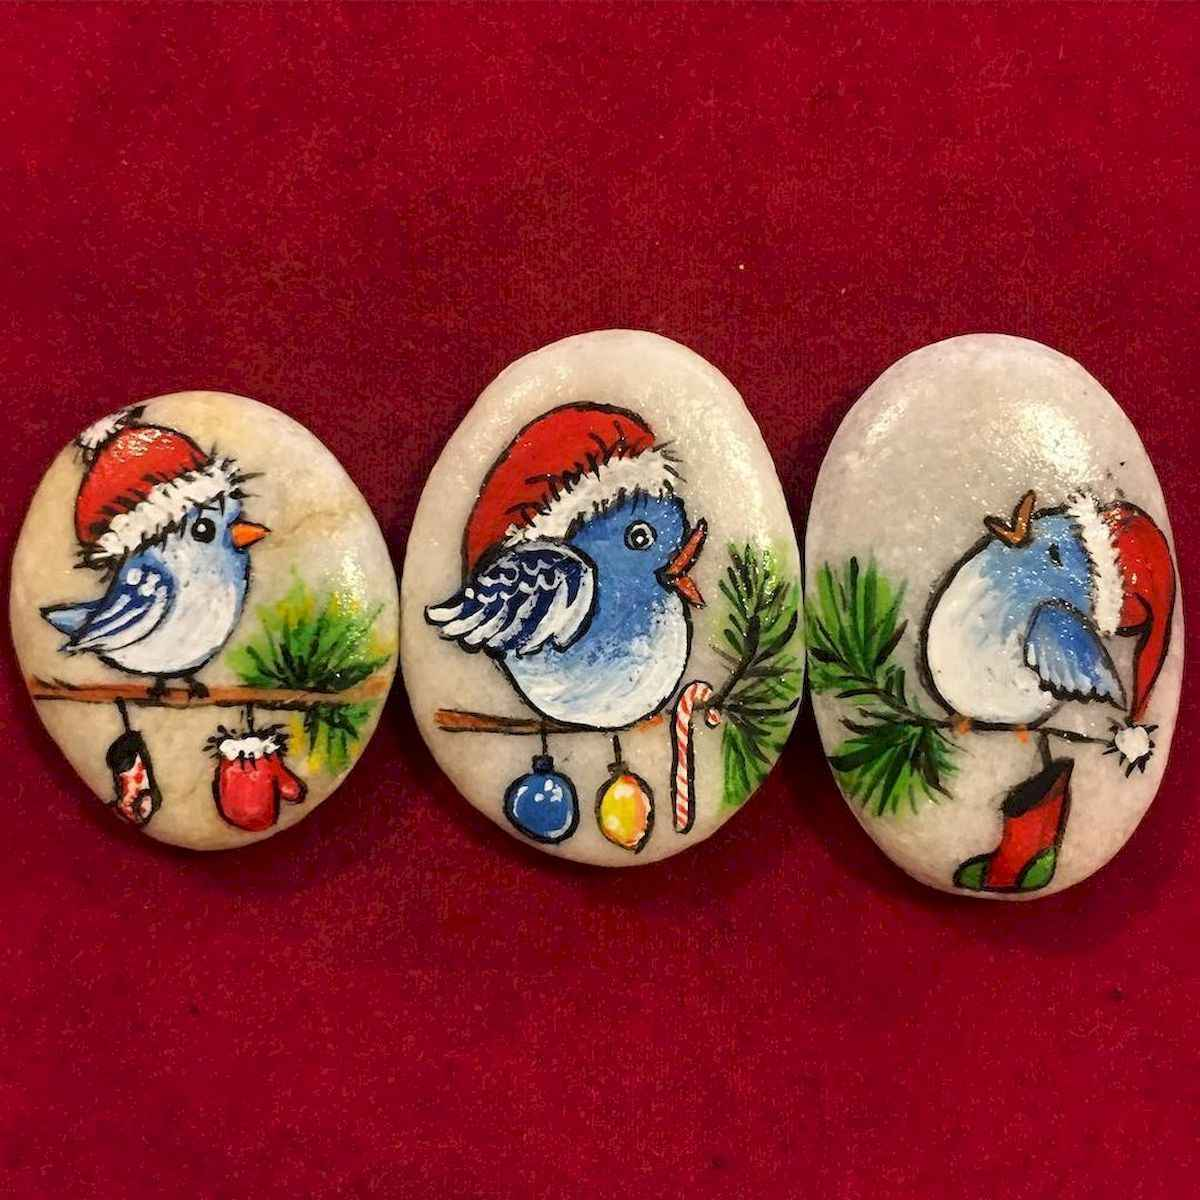 50 Easy DIY Christmas Painted Rock Design Ideas (17)